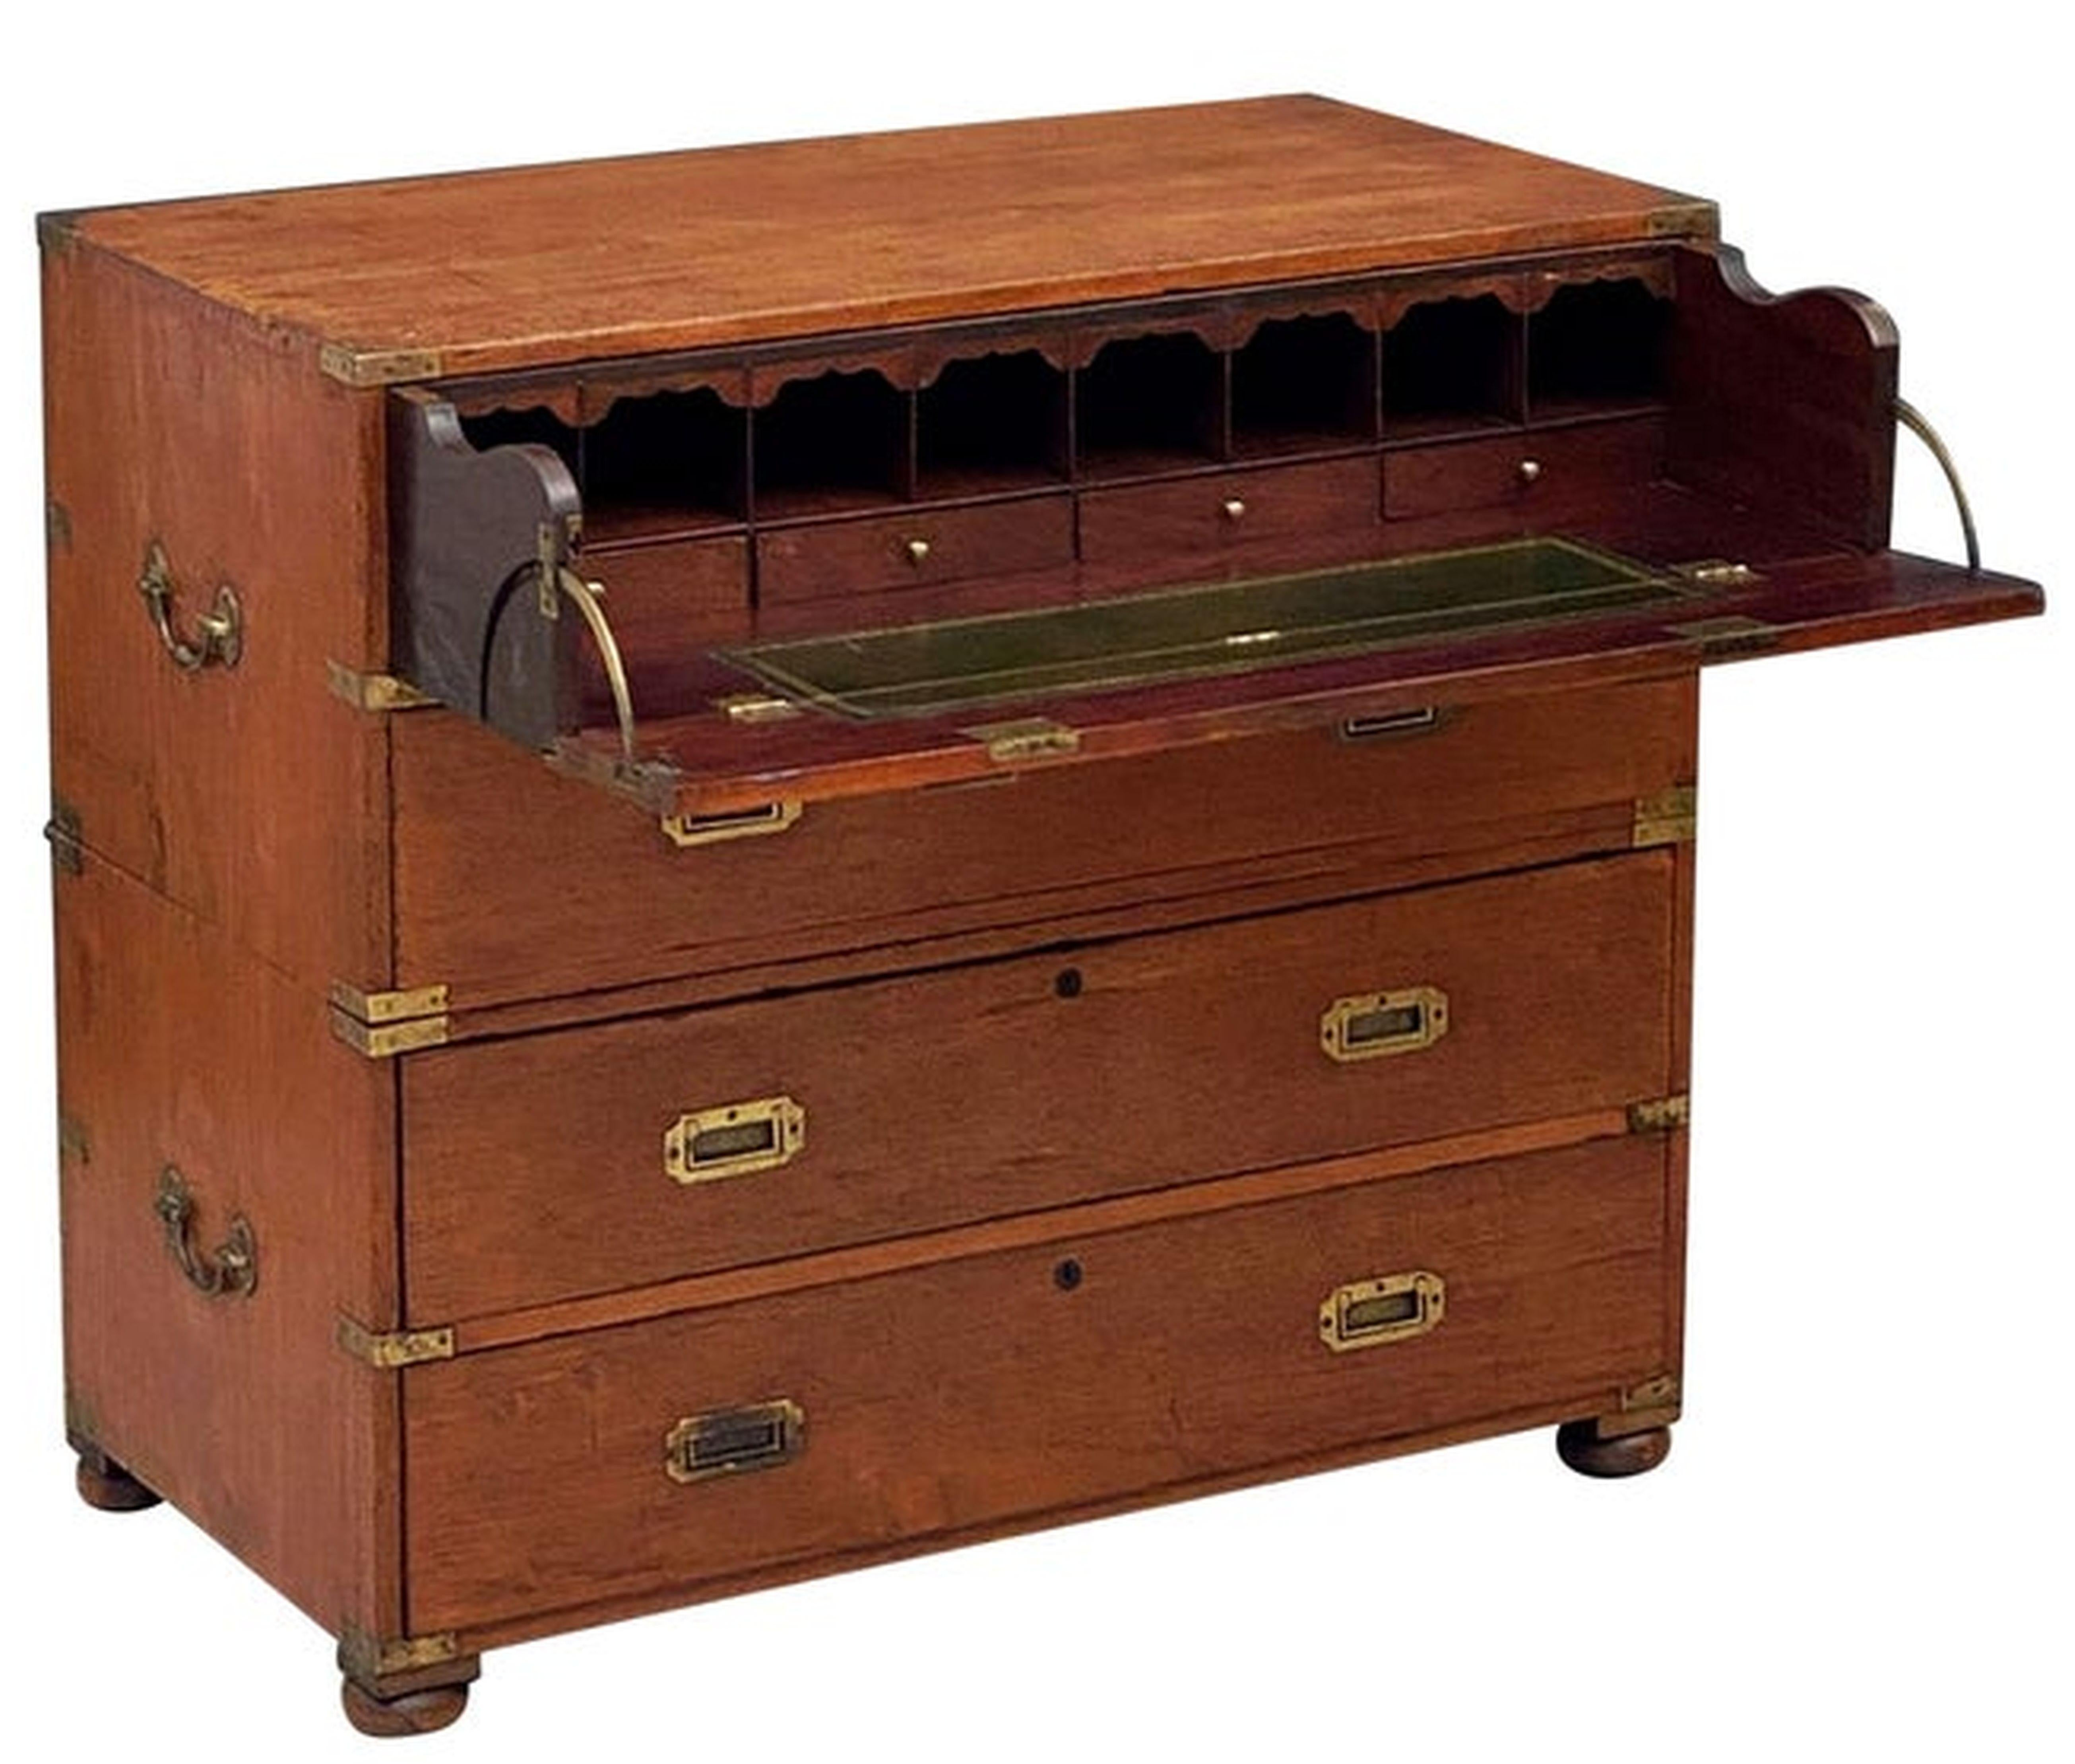 English Officer's Campaign Chest Secretaire of Teak and Brass